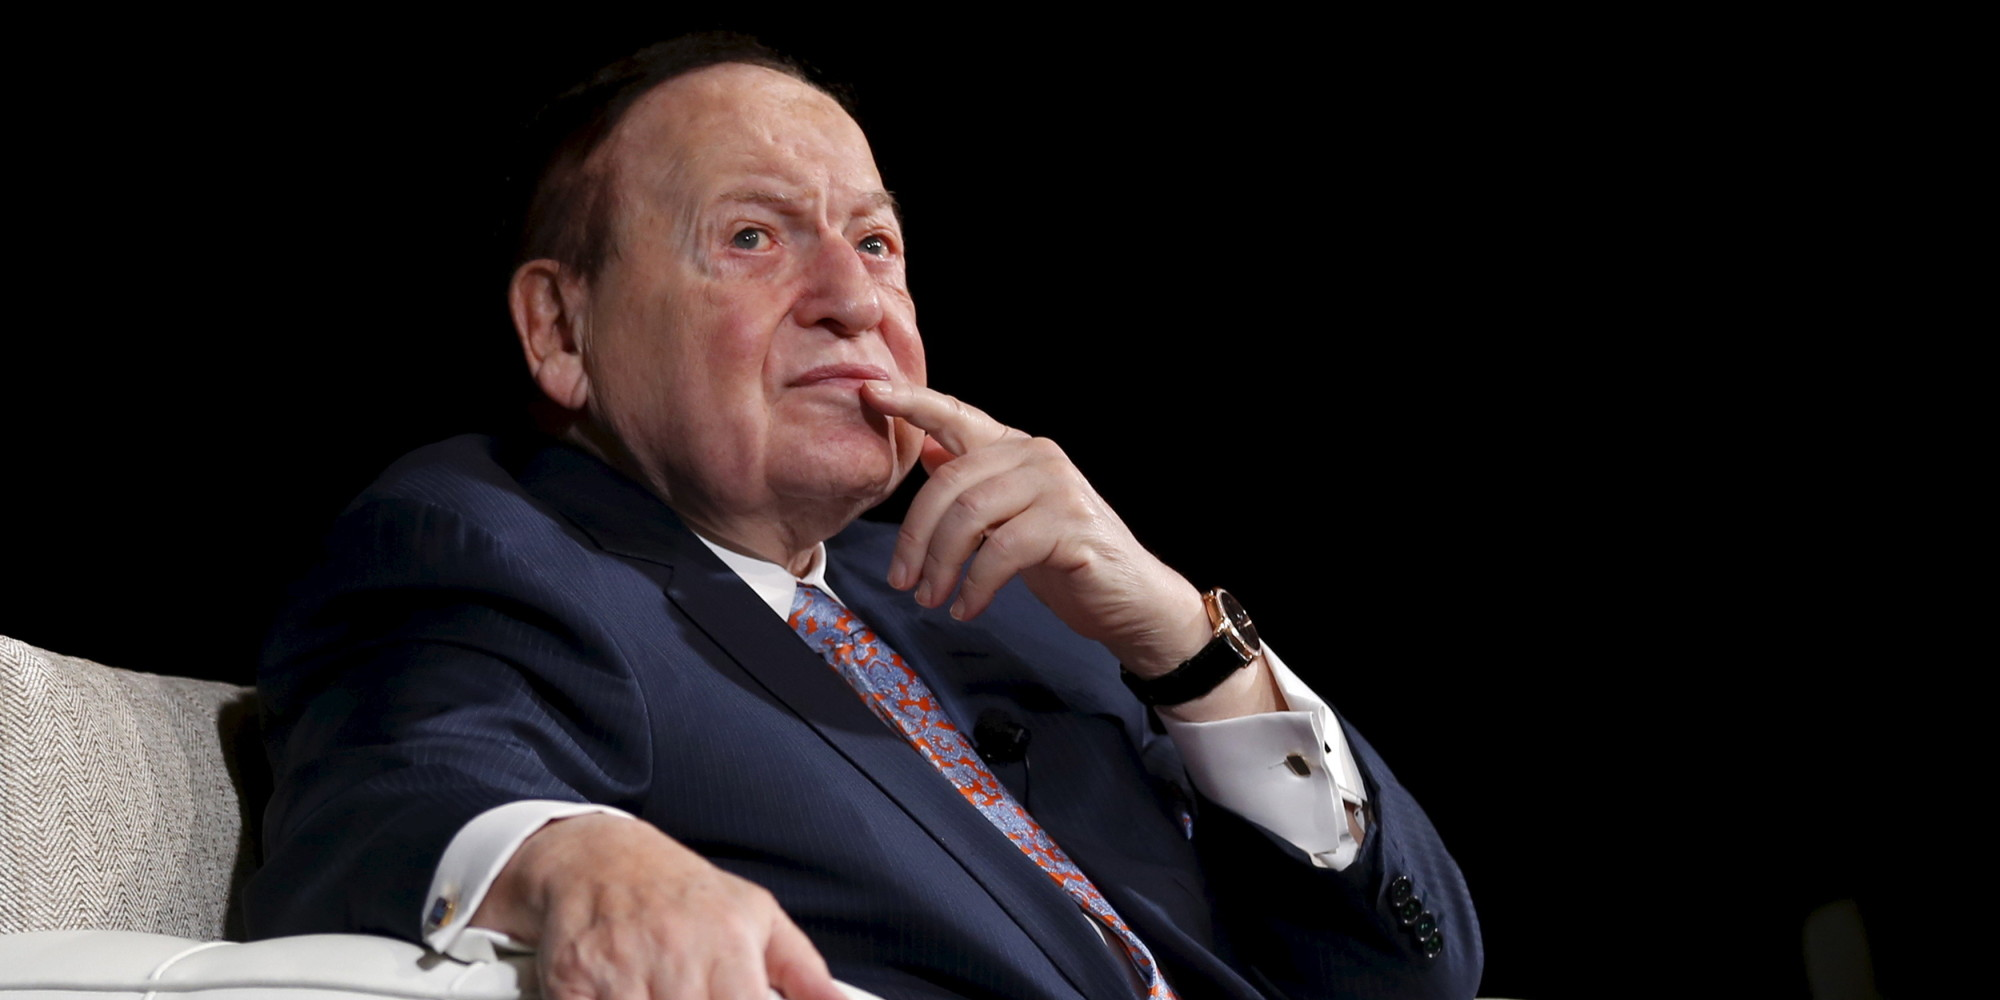 rich want sheldon adelson tyrone huffpost macau reacts gambling sands corp executive chief vegas conference giant las china during patterson